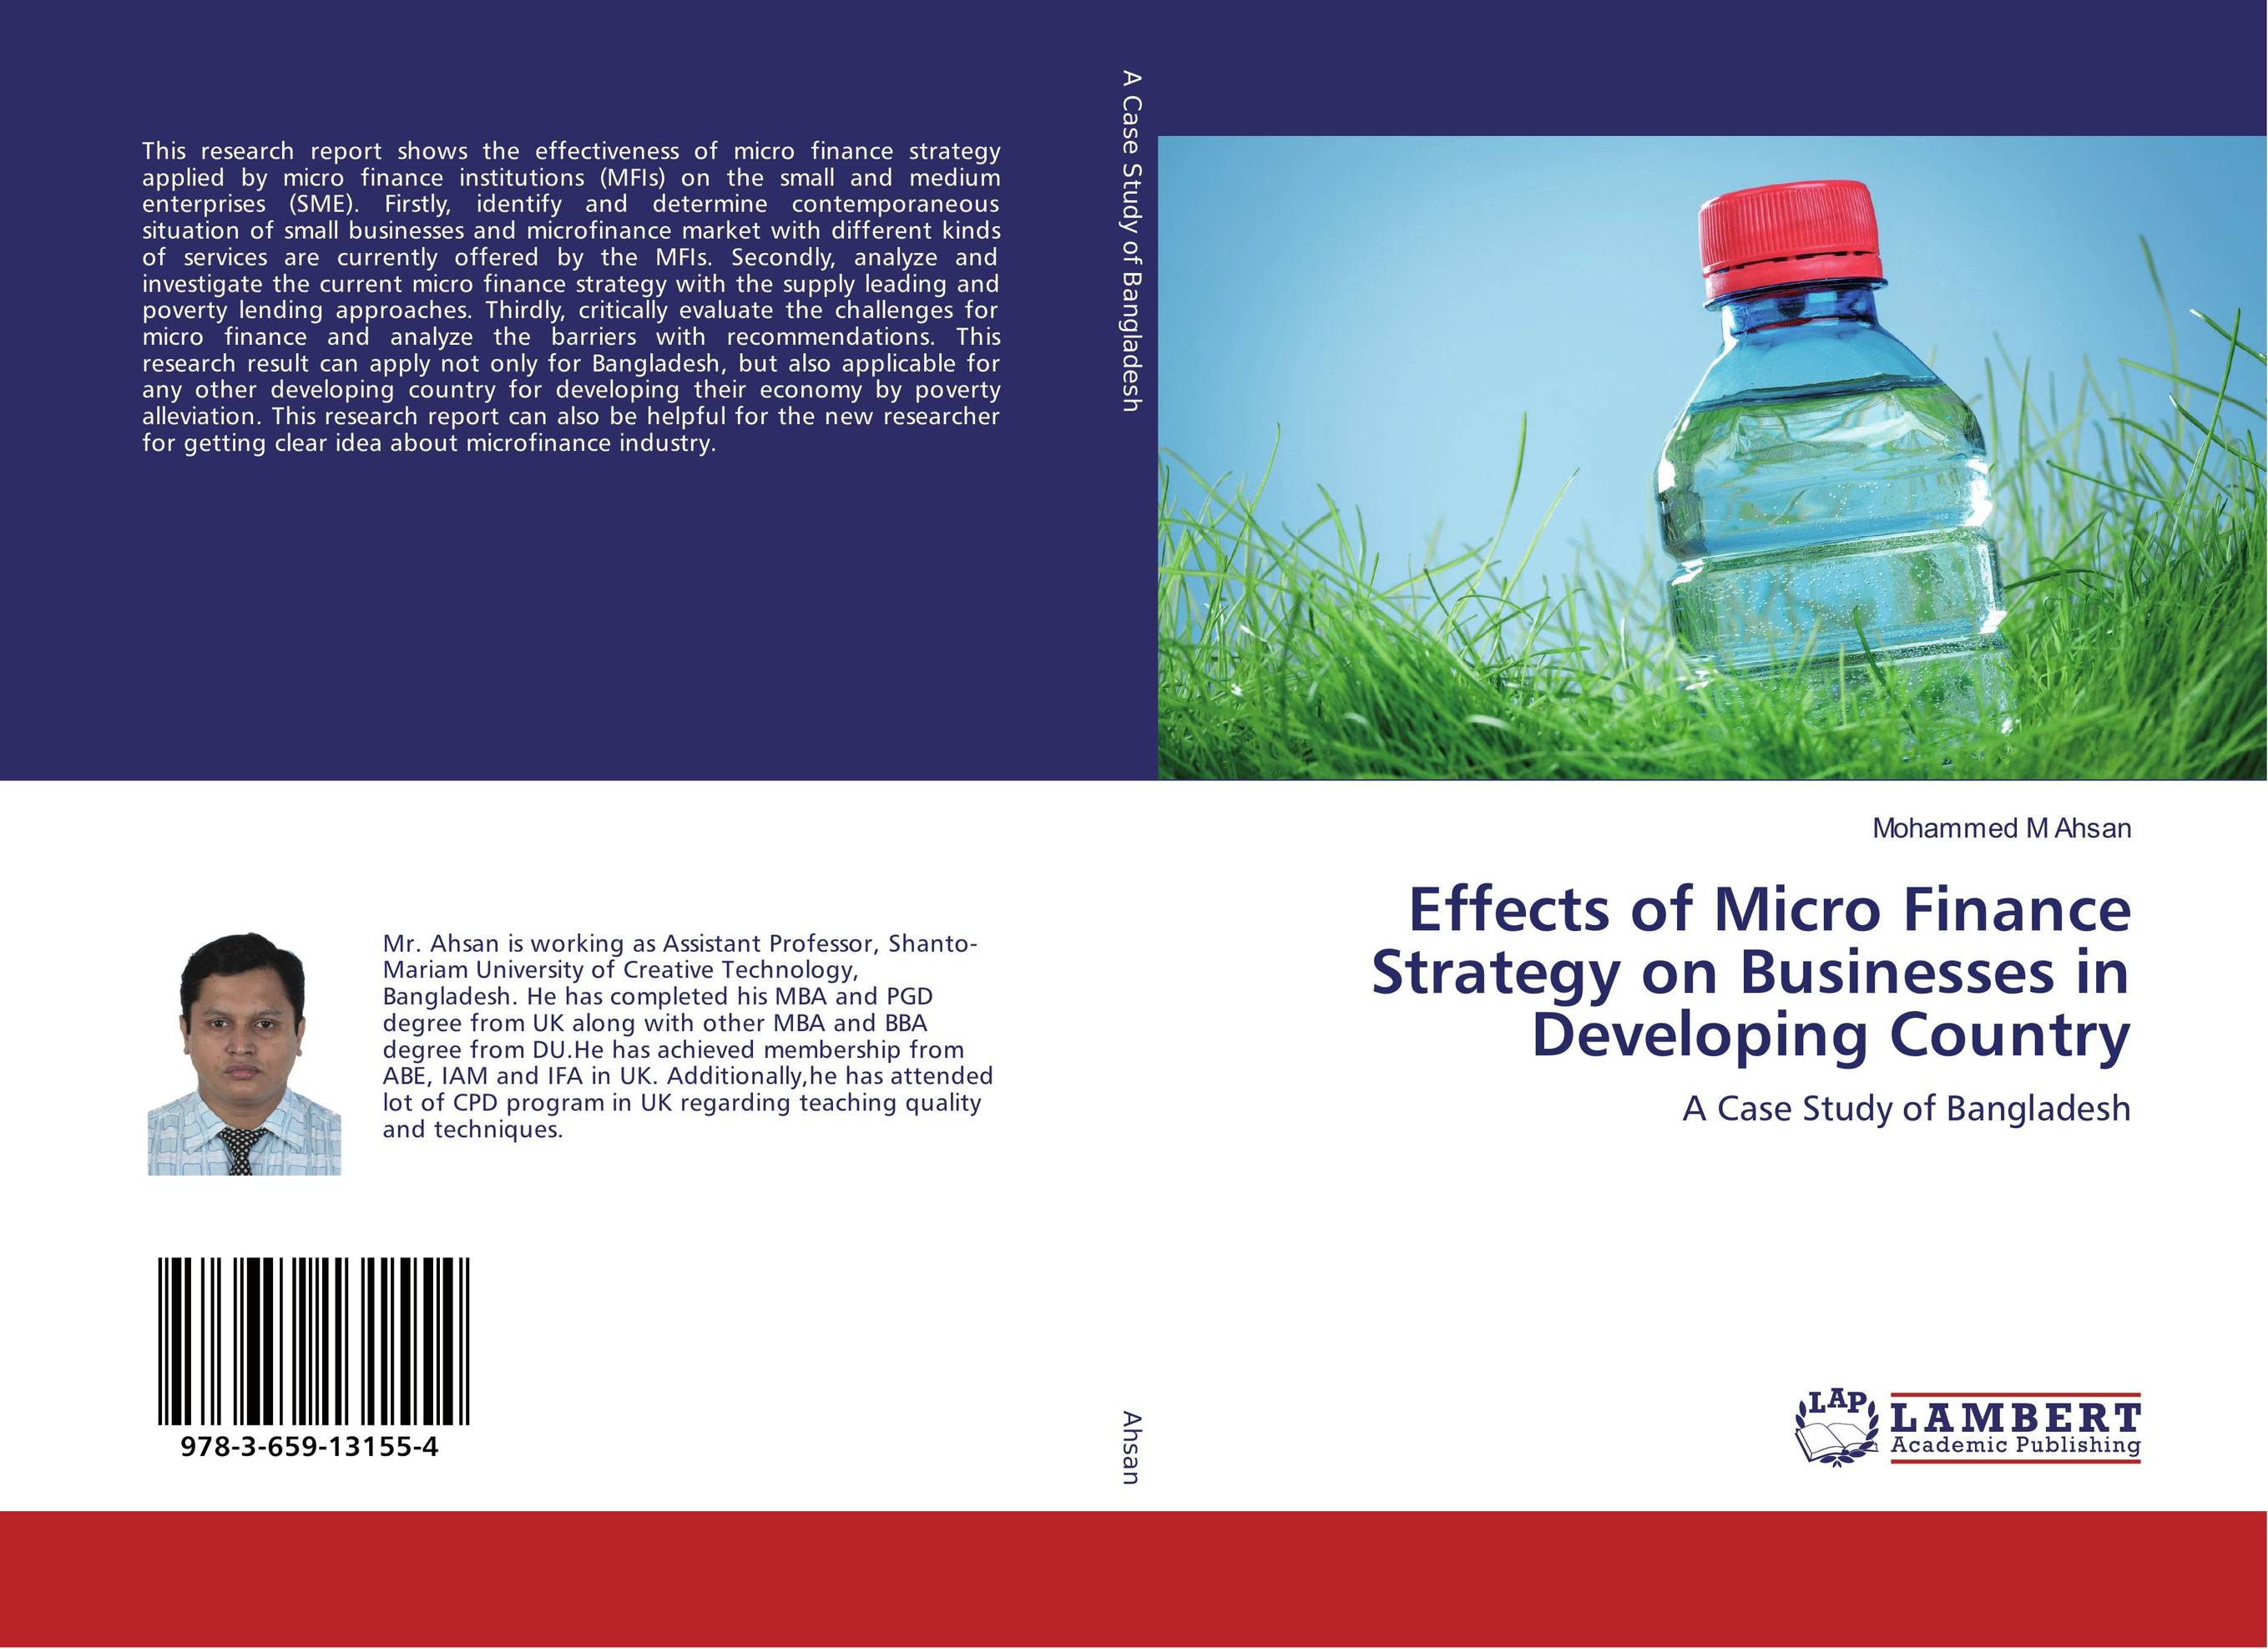 Effects of Micro Finance Strategy on Businesses in Developing Country micro finance in india